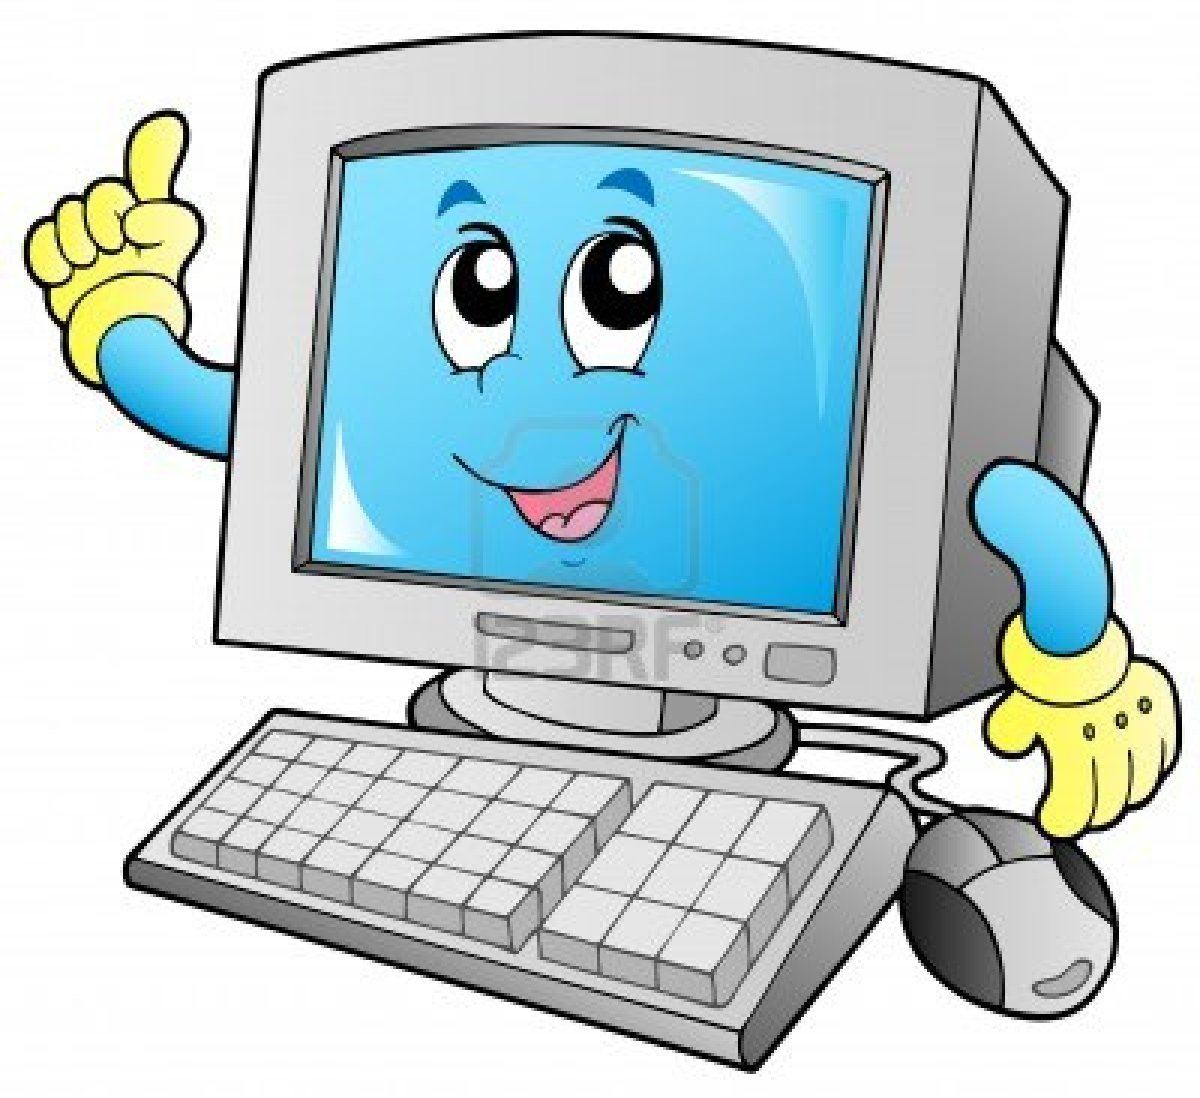 computer education clipart - photo #20